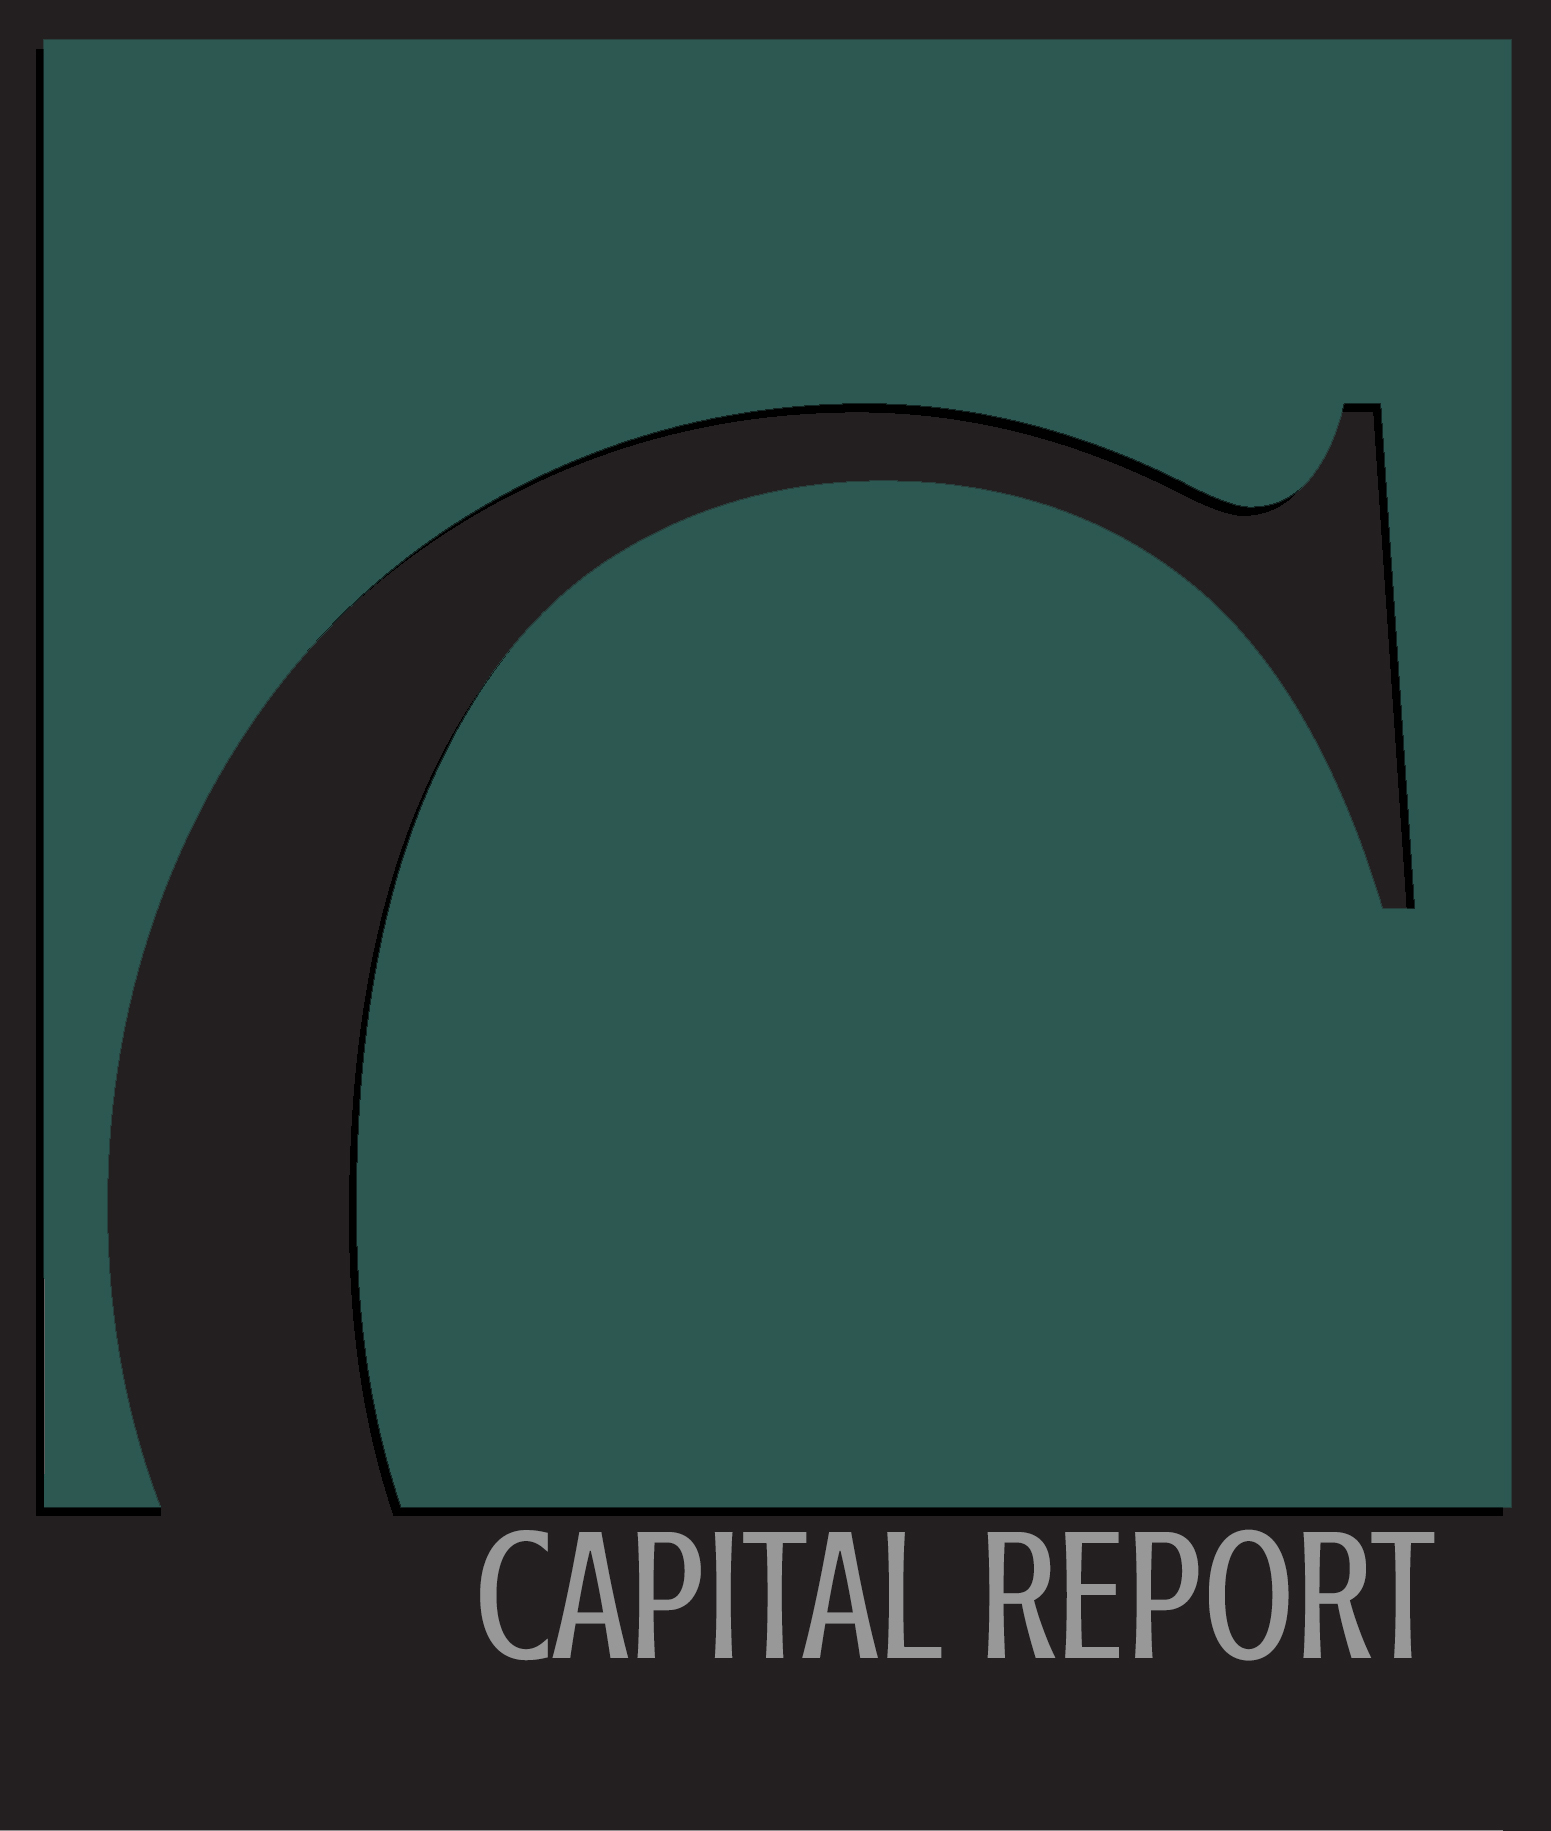 THE WORLD'S MOST COMPREHENSIVE REPORT ON Capital